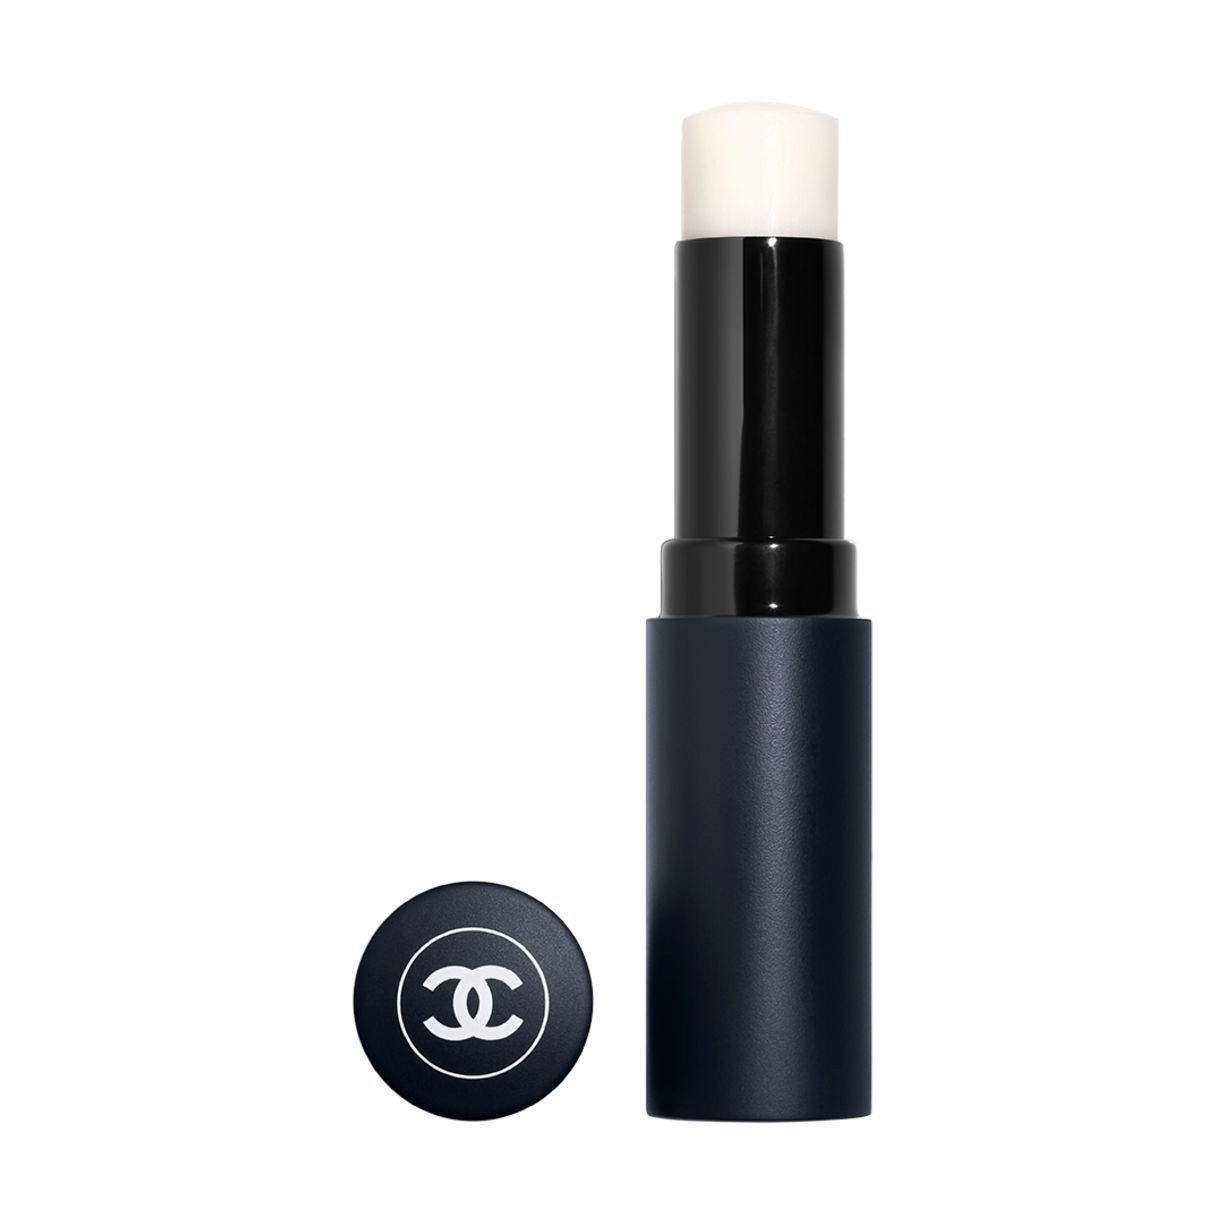 BOY DE CHANEL LIP BALM MOISTURIZING MATTE LIP BALM 3G